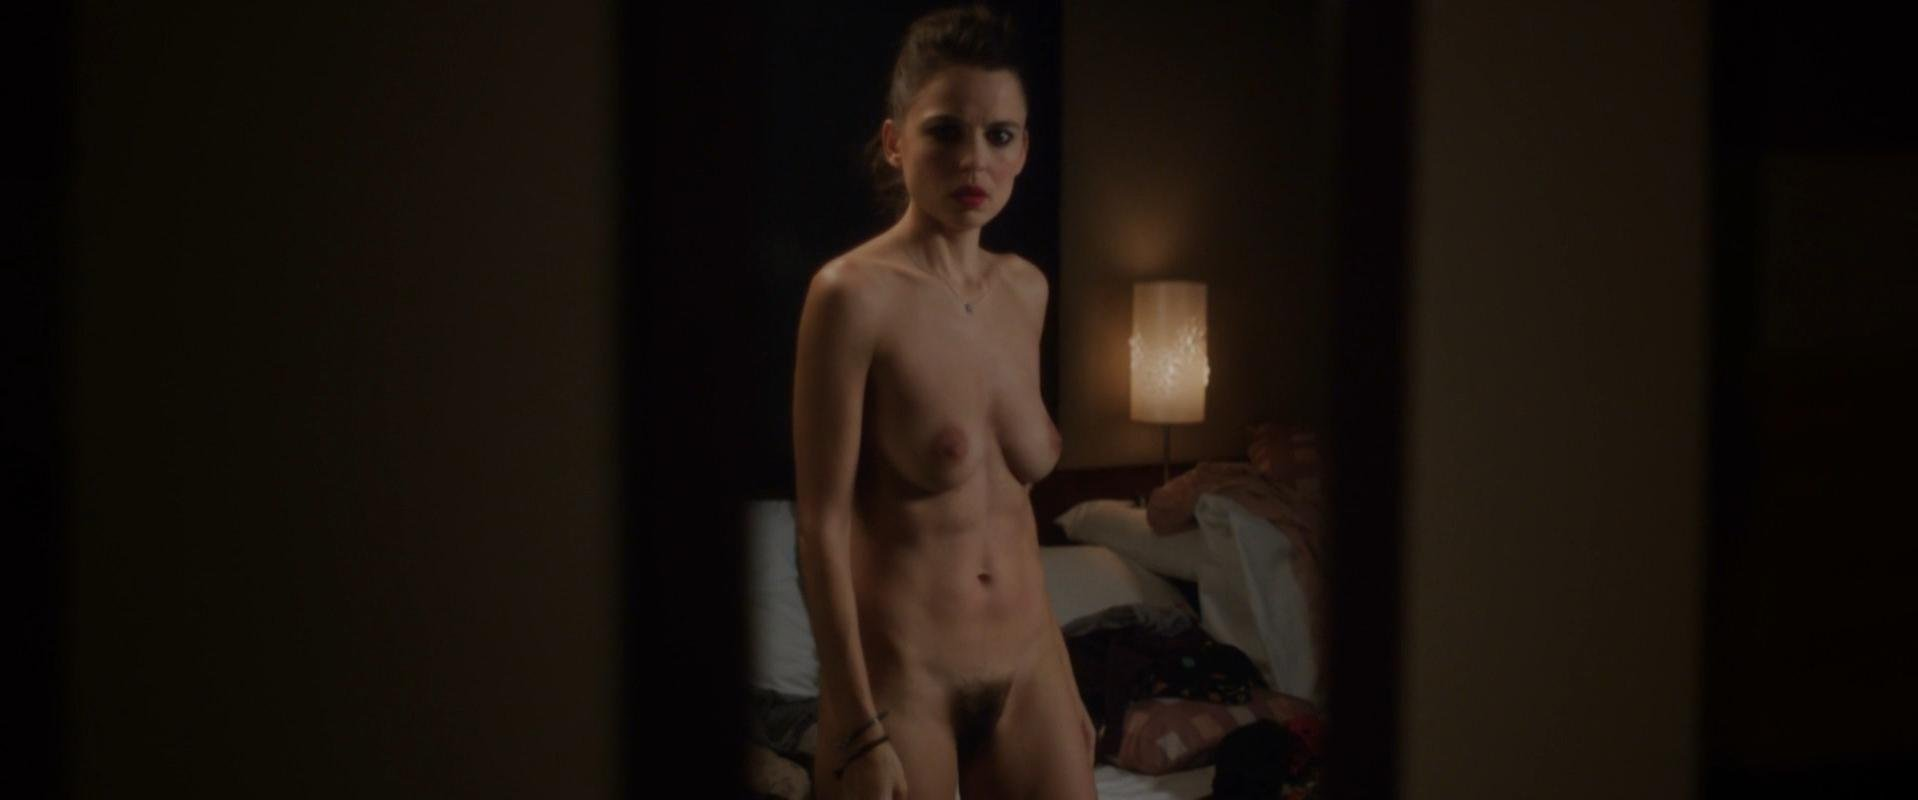 Elena anaya topless - 2019 year